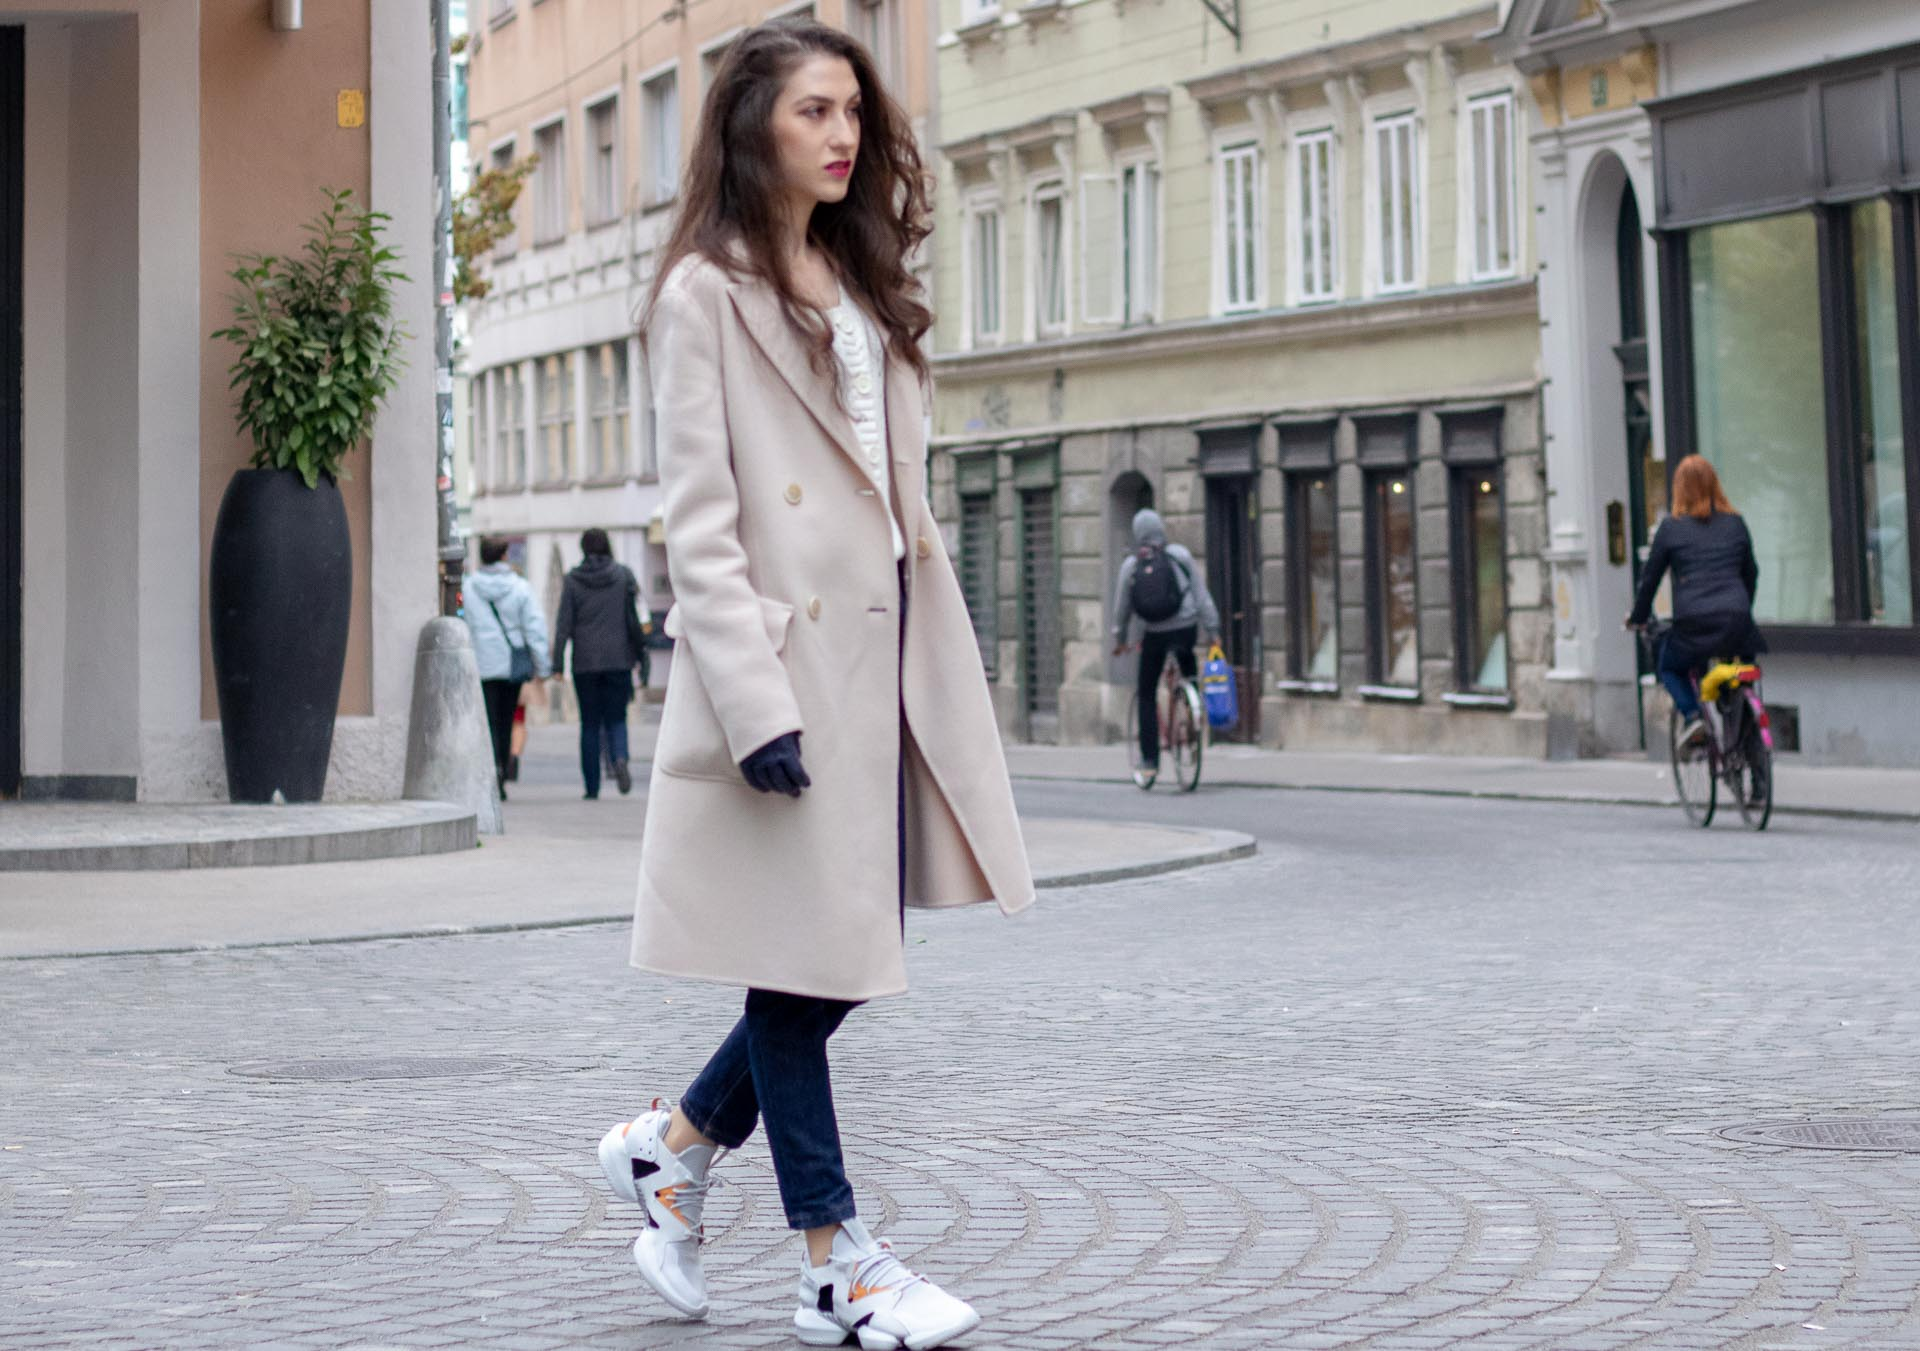 Beautiful Slovenian Fashion Blogger Veronika Lipar of Brunette from Wall dressed in white Mango cardigan tucked into A.P.C. dark blue denim jeans, Weekend Max Mara coat, Reebok instapump crossing road in Ljubljana